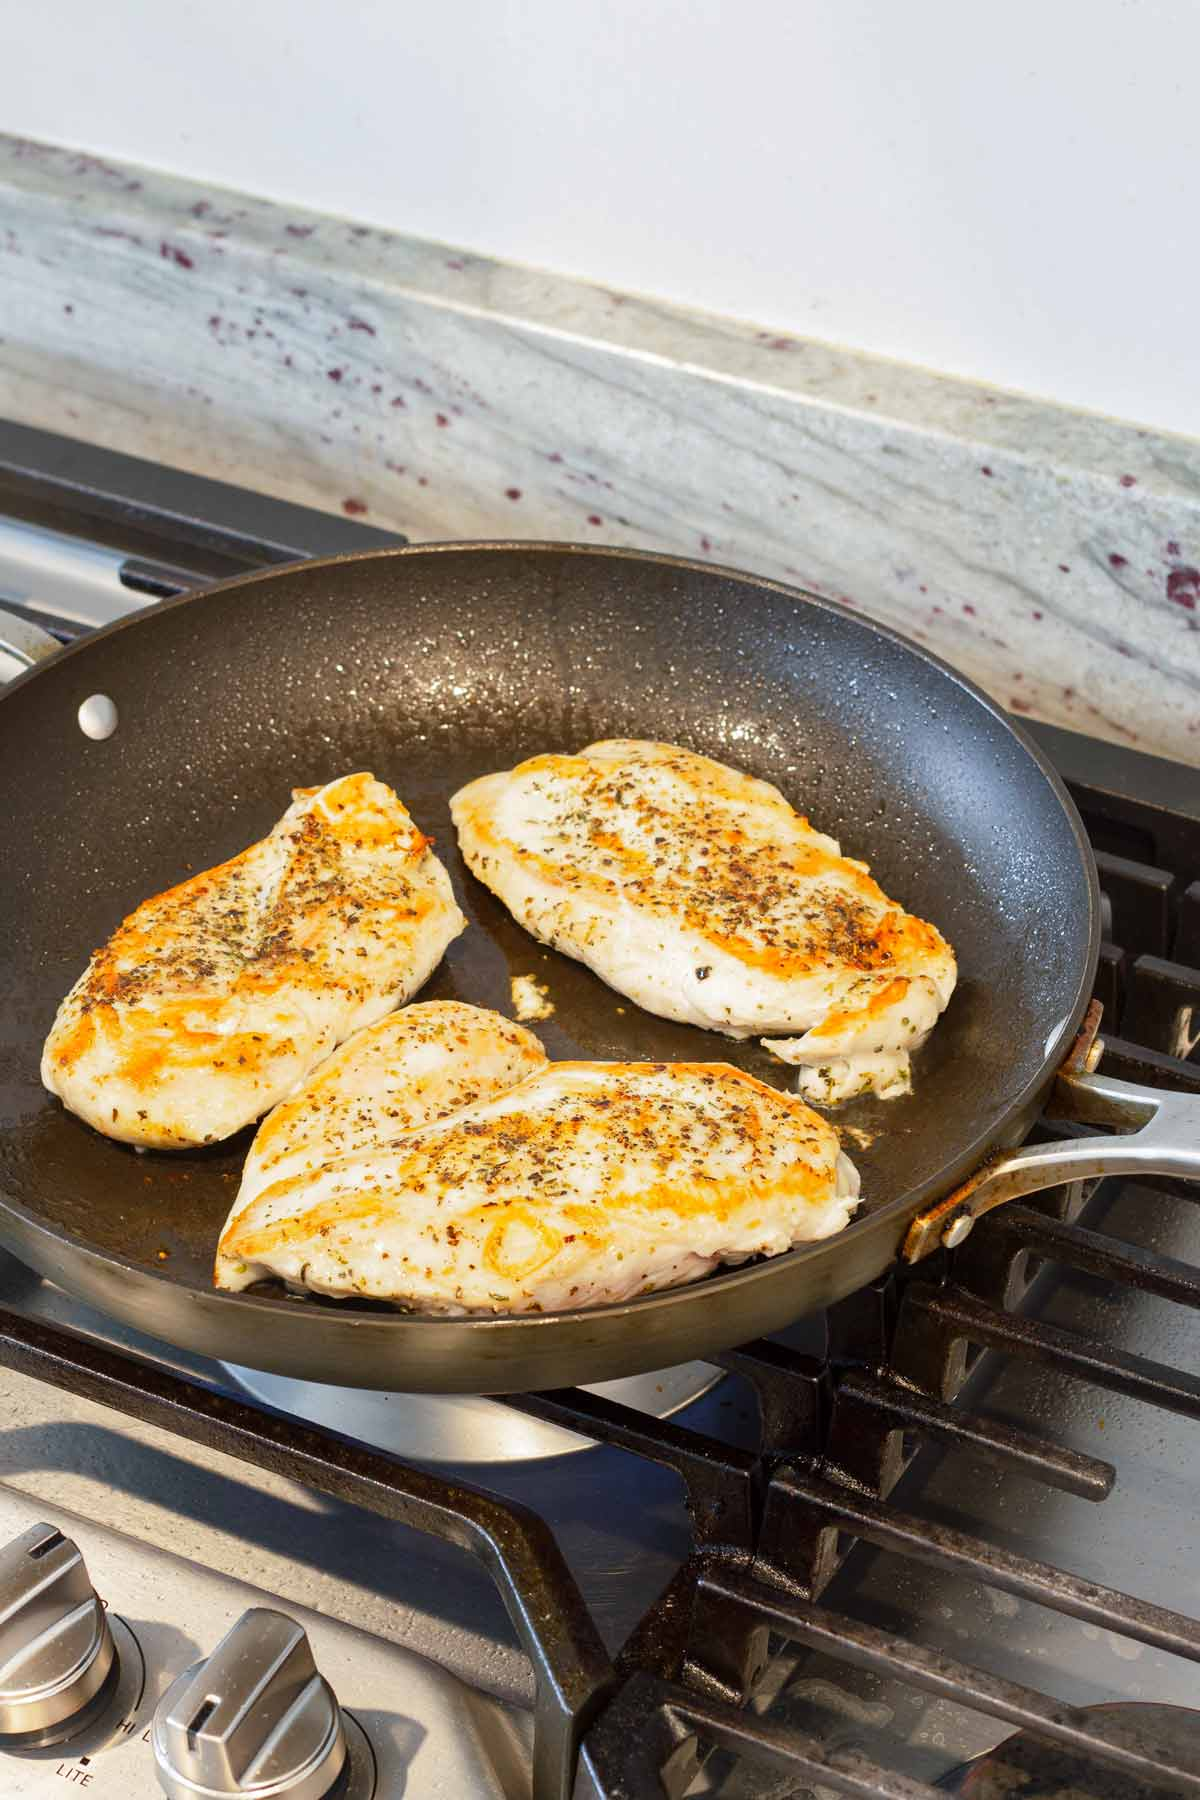 pan-searing chicken breasts on a skillet